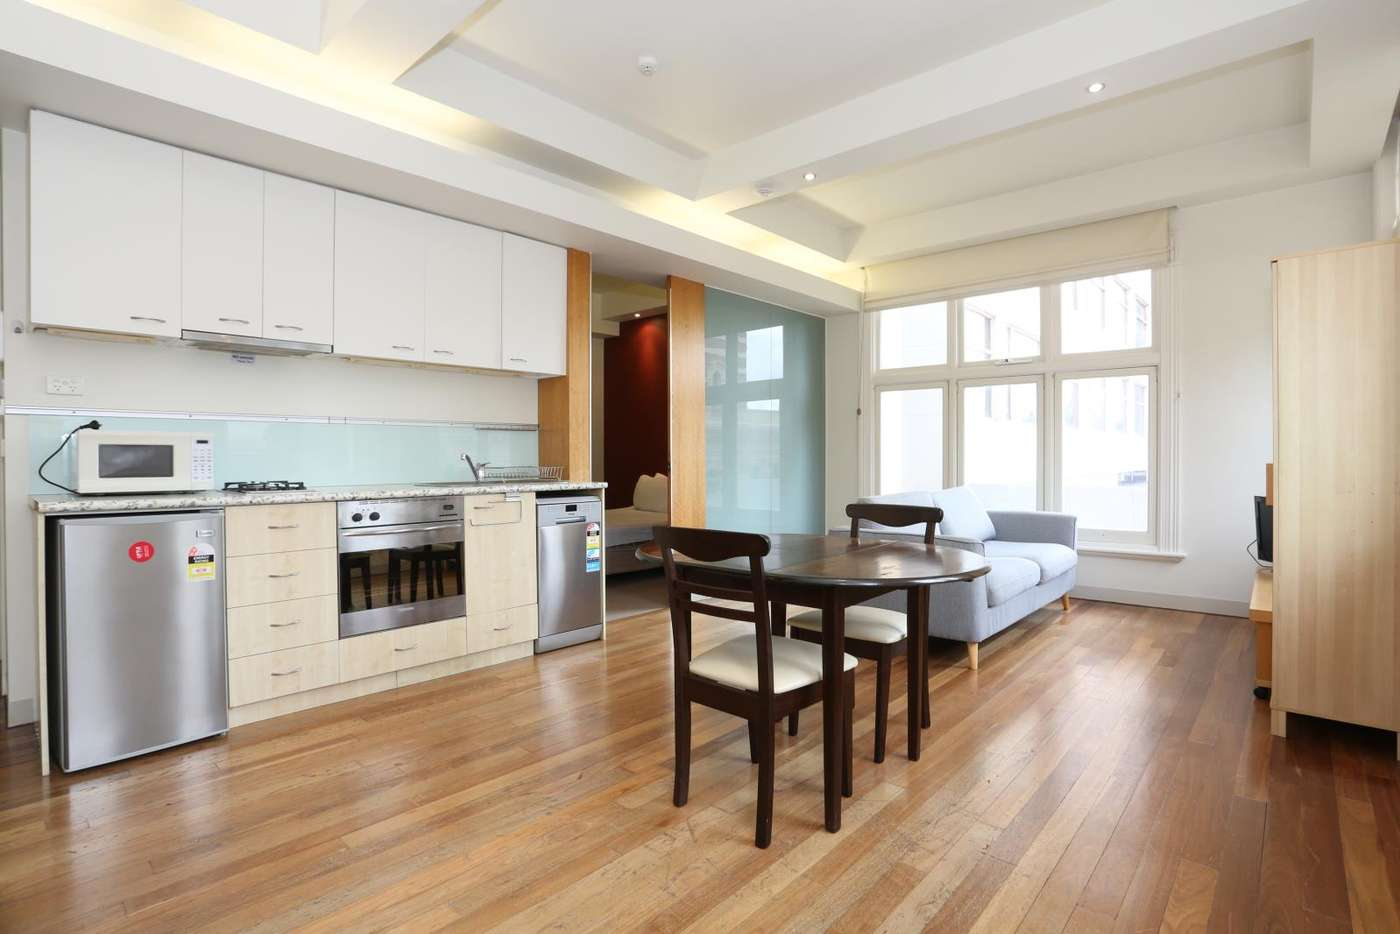 Main view of Homely unit listing, 502/292-296 Flinders Street, Melbourne VIC 3000